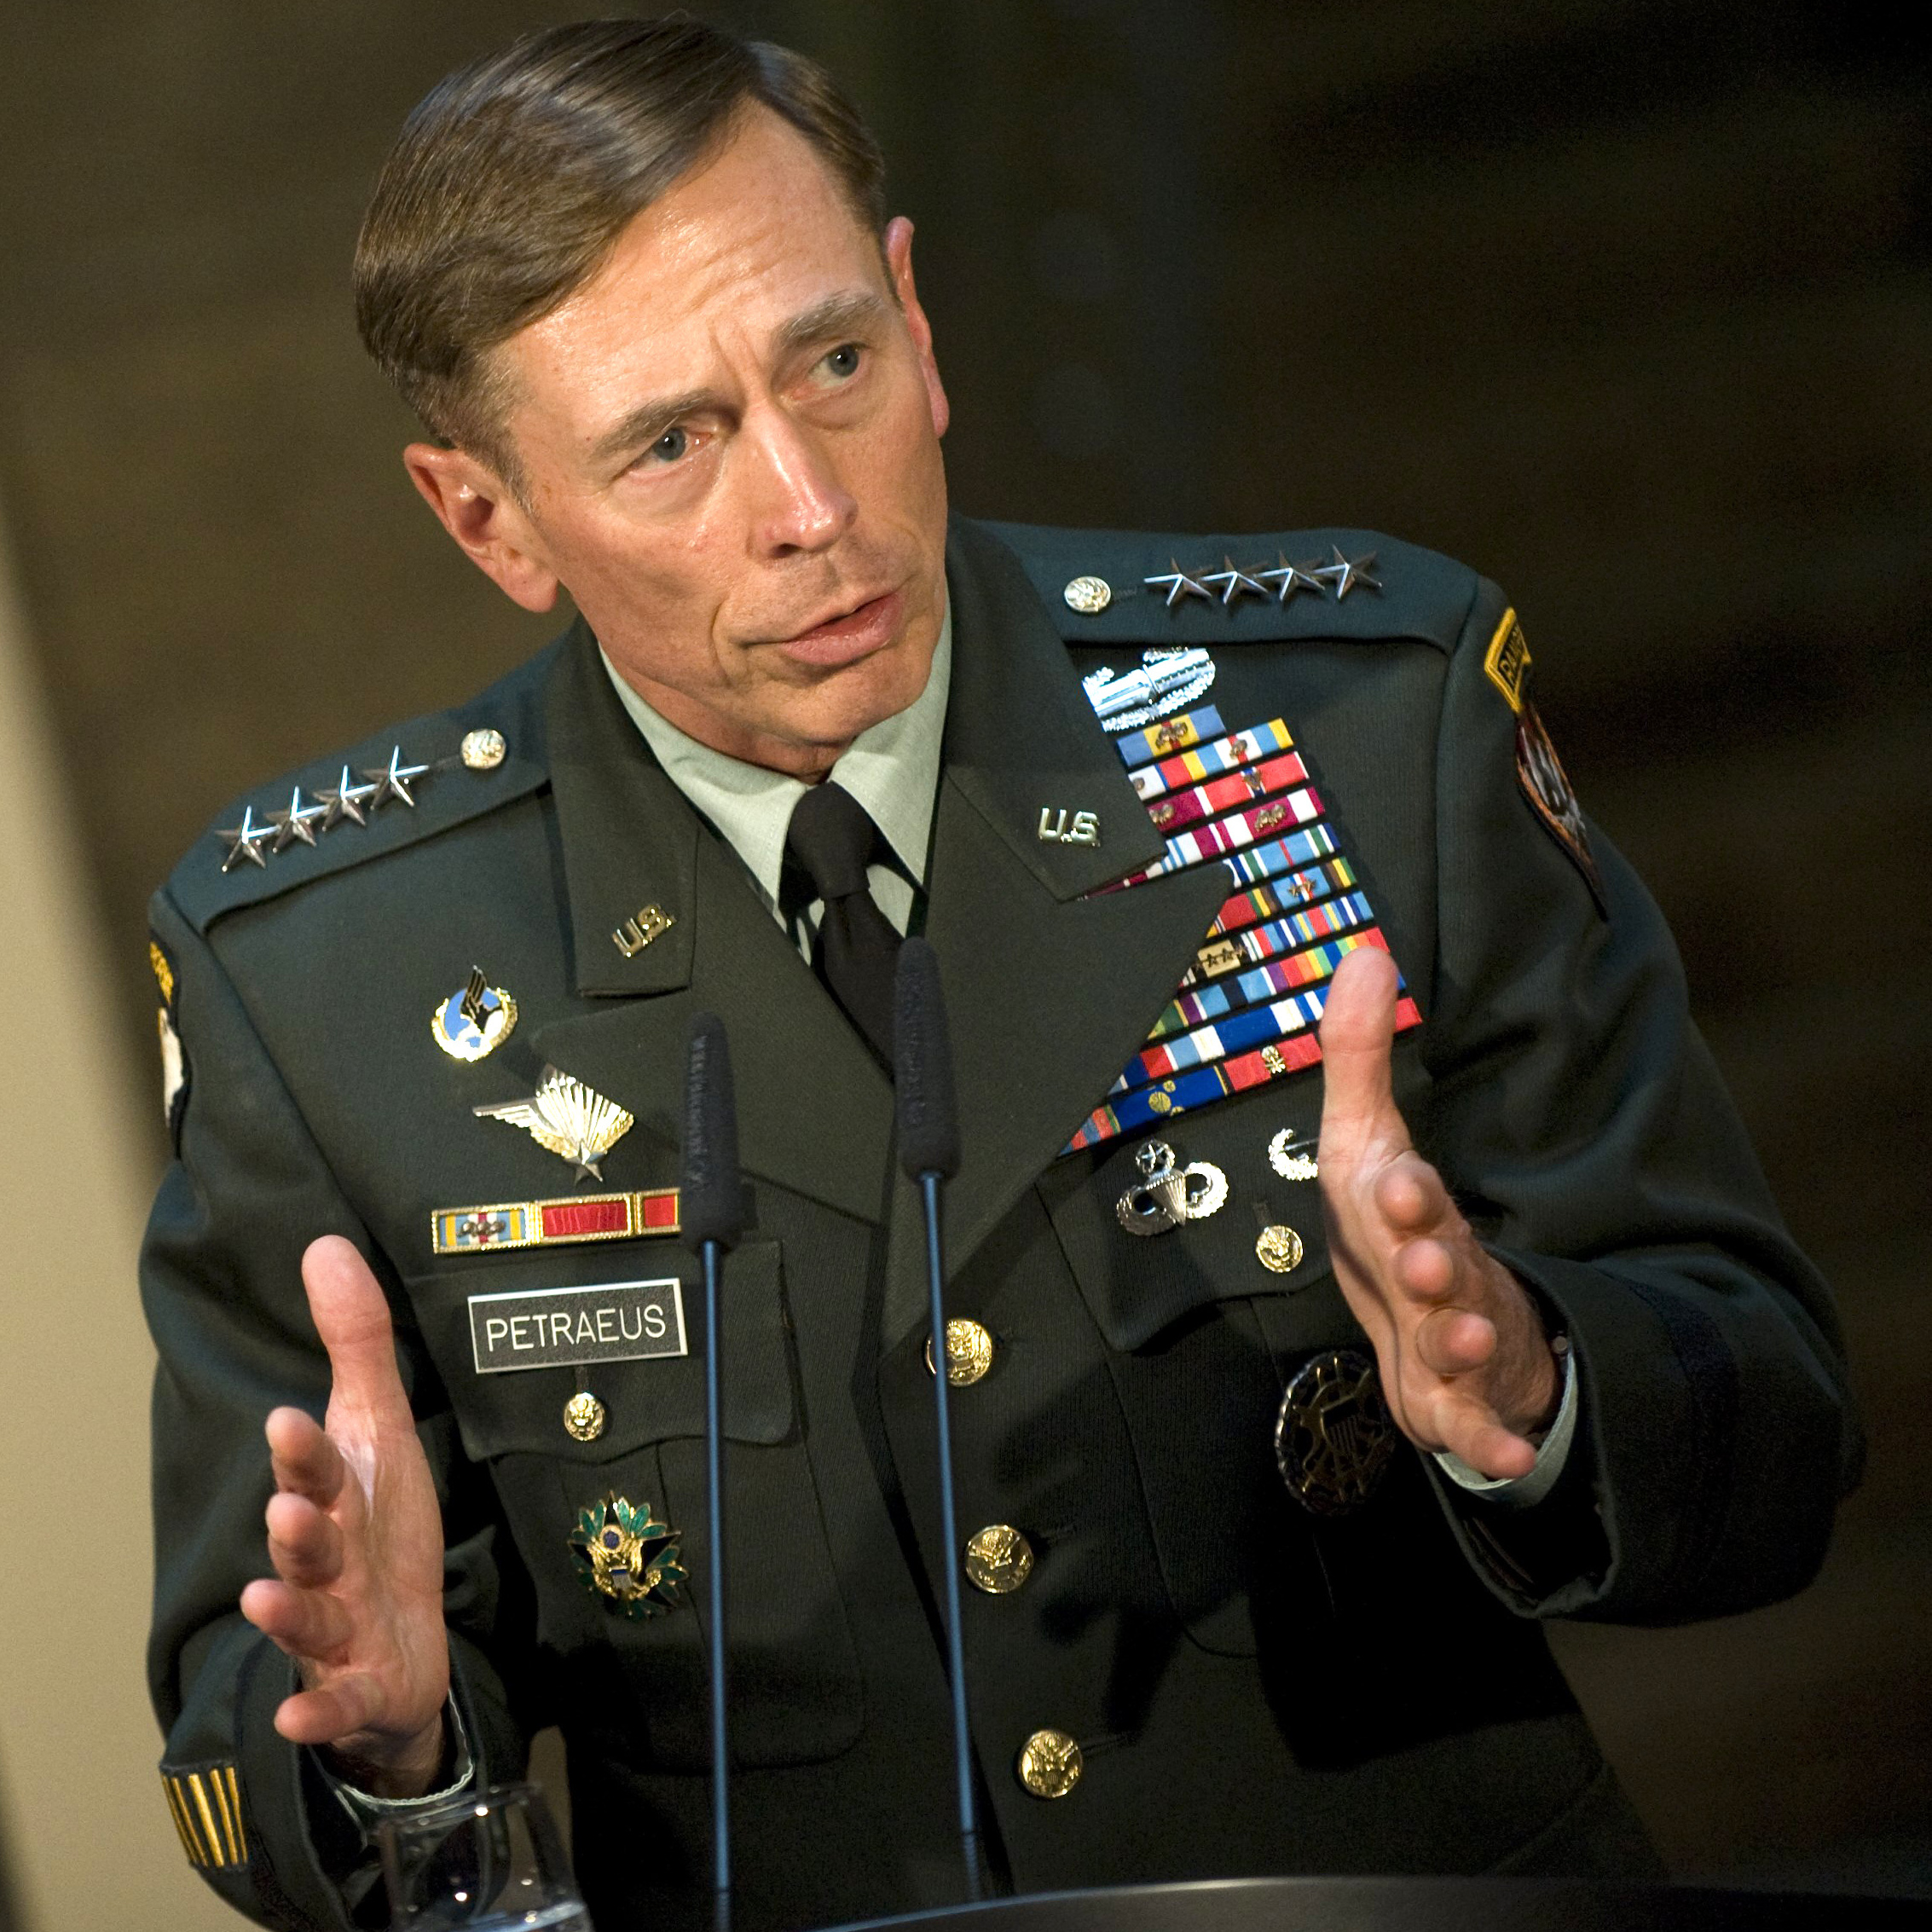 Gen. David Petraeus is the subject of The Insurgents: David Petraeus and the Plot to Change the American Way of War, a new book by Fred Kaplan.